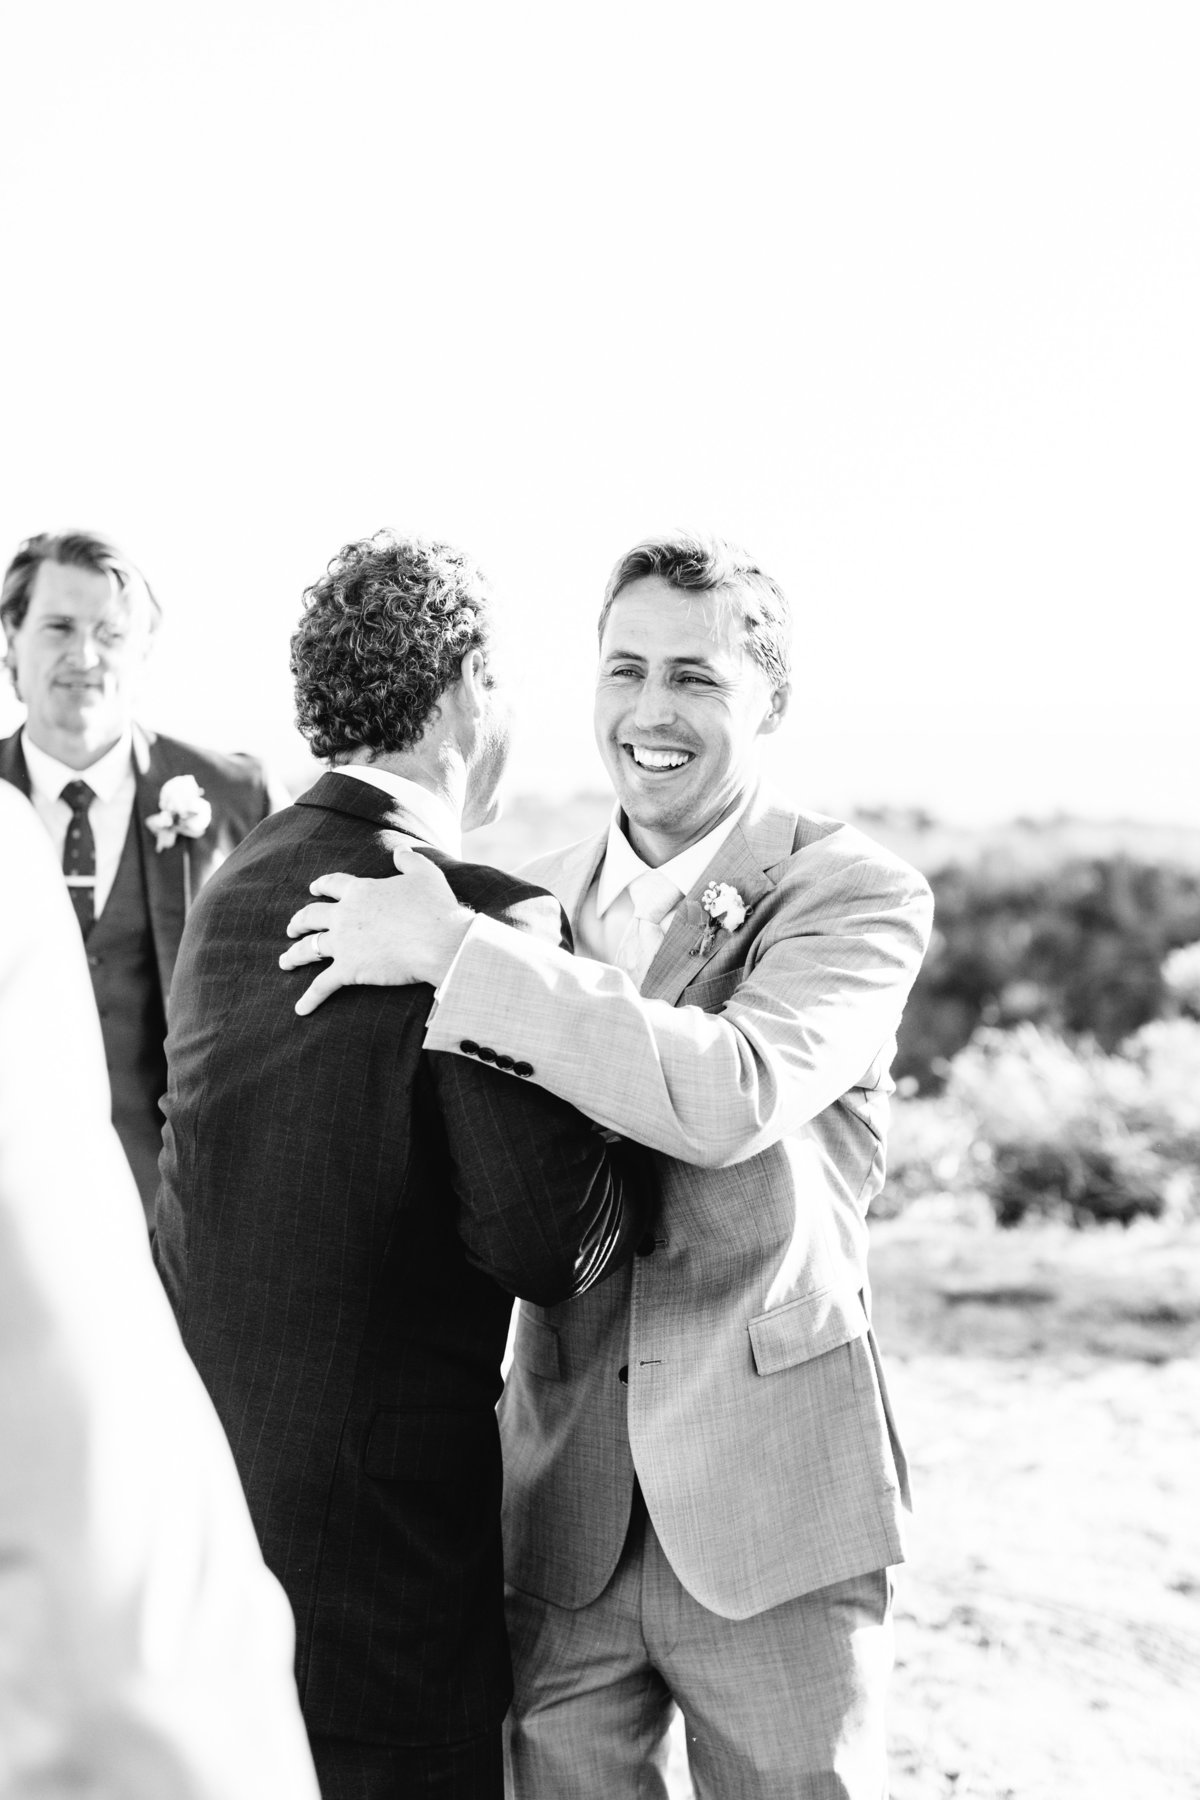 Best California Wedding Photographer-Jodee Debes Photography-109